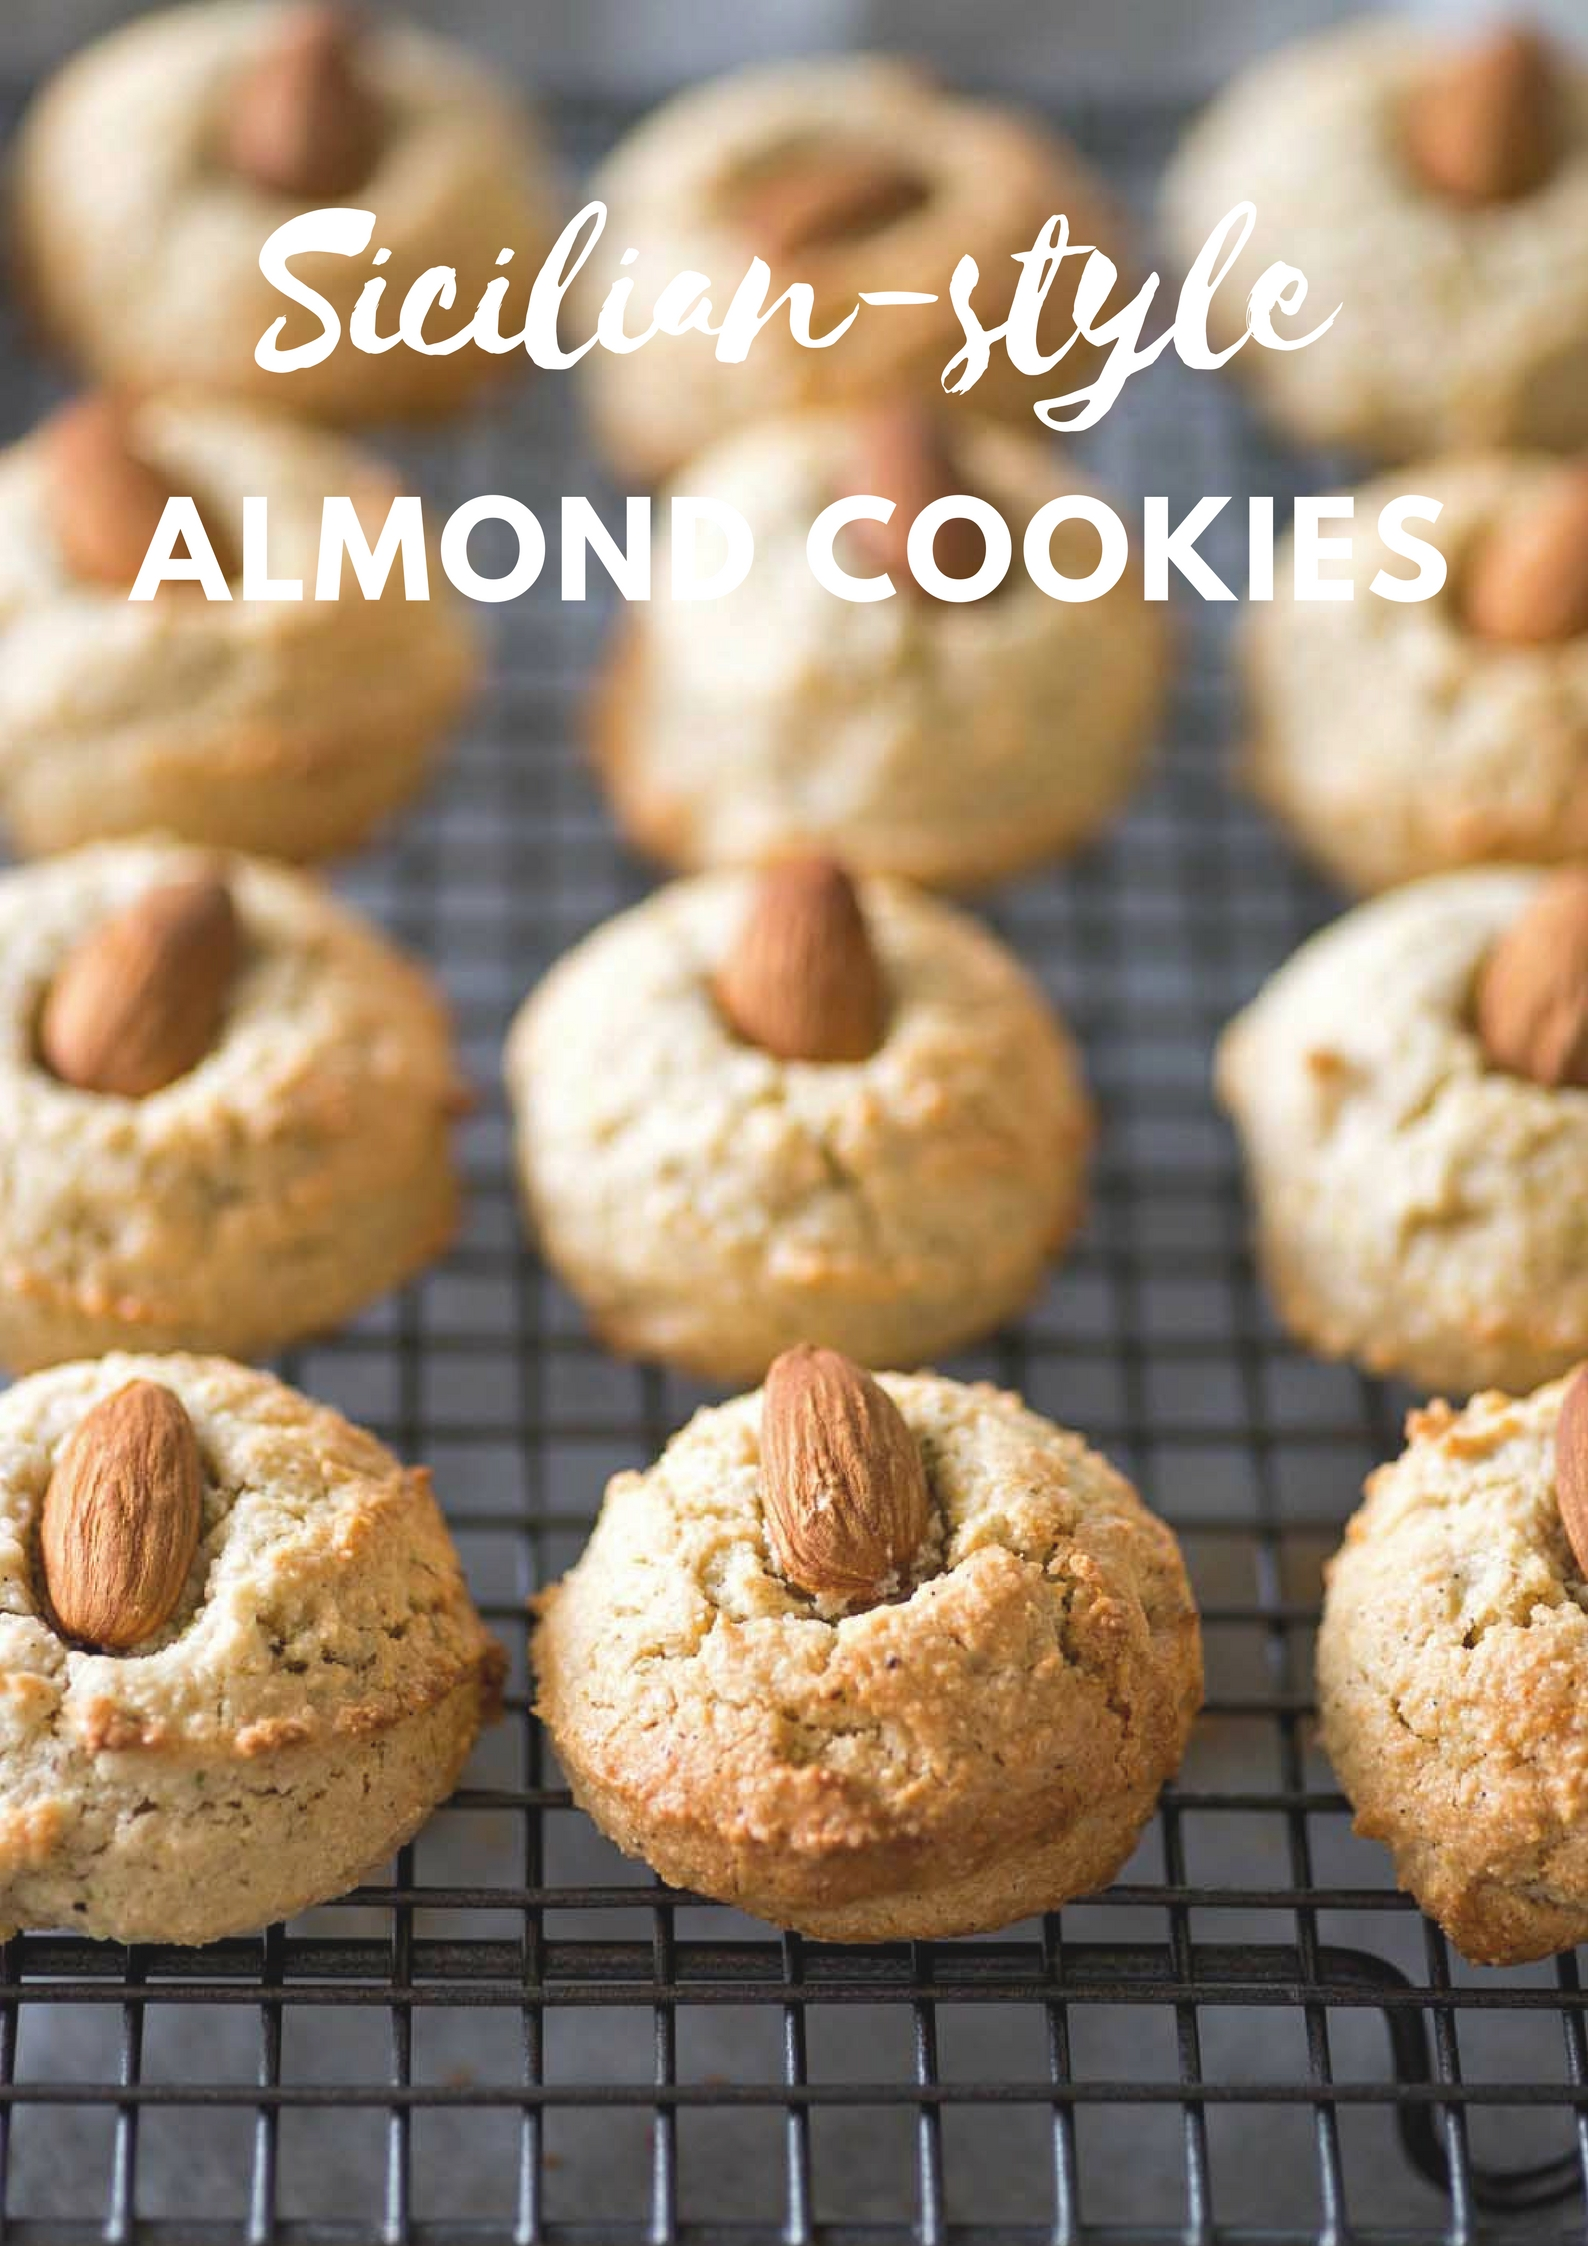 All you need to make these soft and fragrant Sicilian Almond Cookies are 3 ingredients: almonds, sugar, egg whites. These cookies are naturally dairy and gluten free.